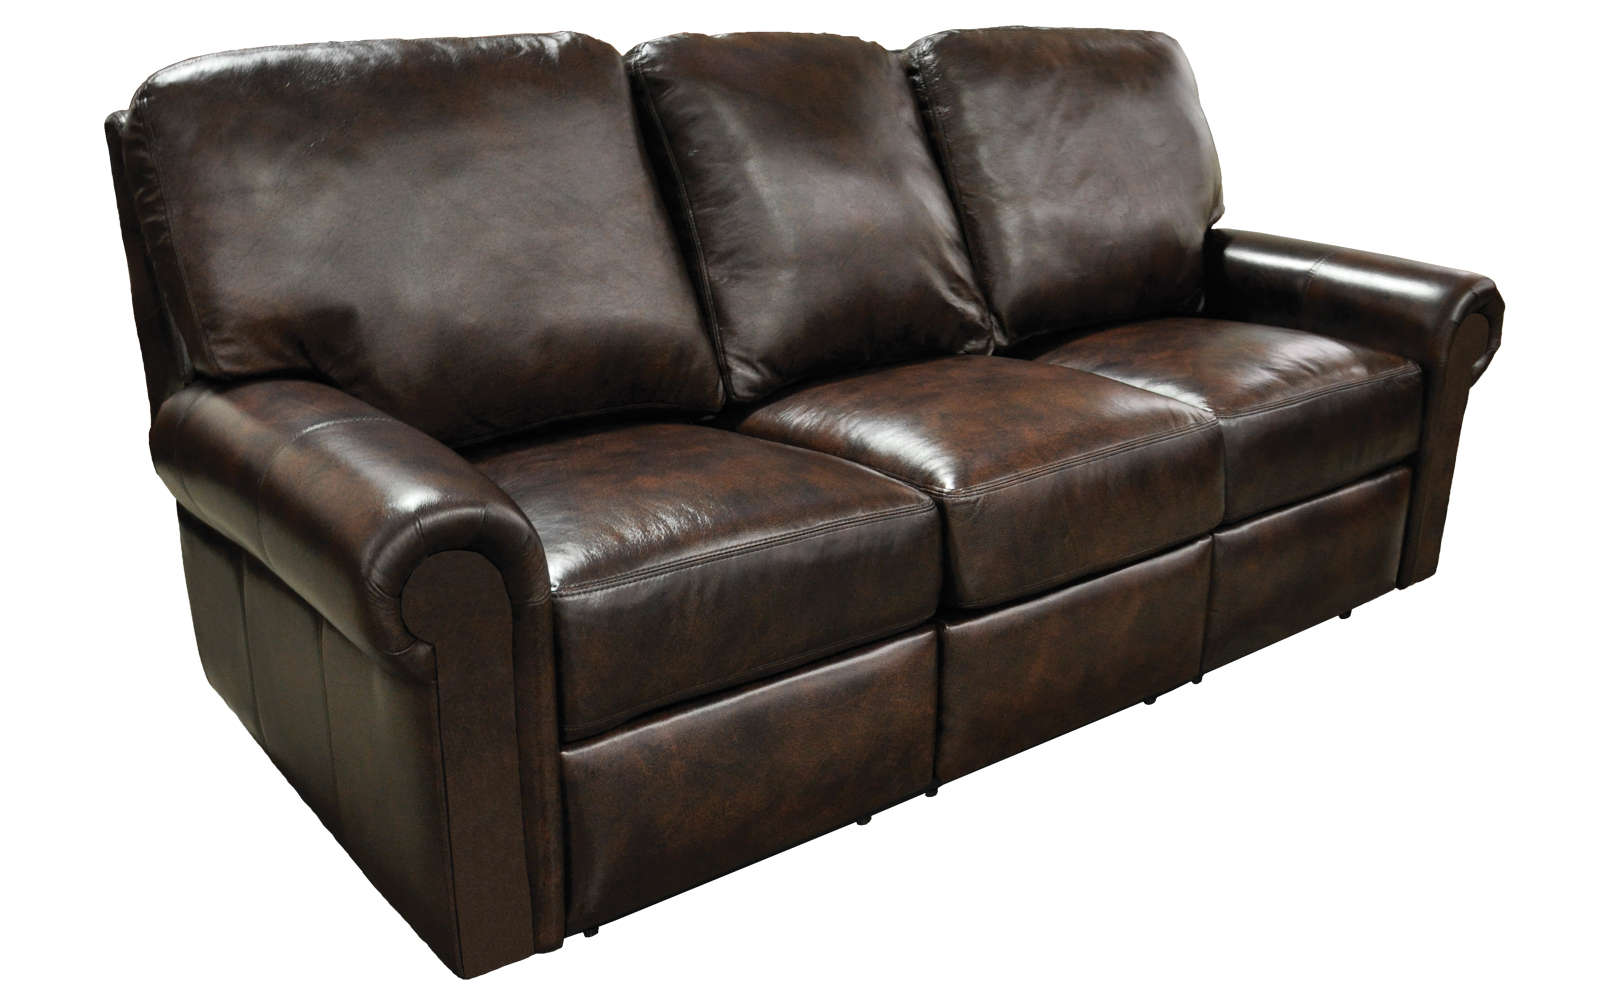 Fairbanks sofa arizona leather interiors for Furniture fairbanks